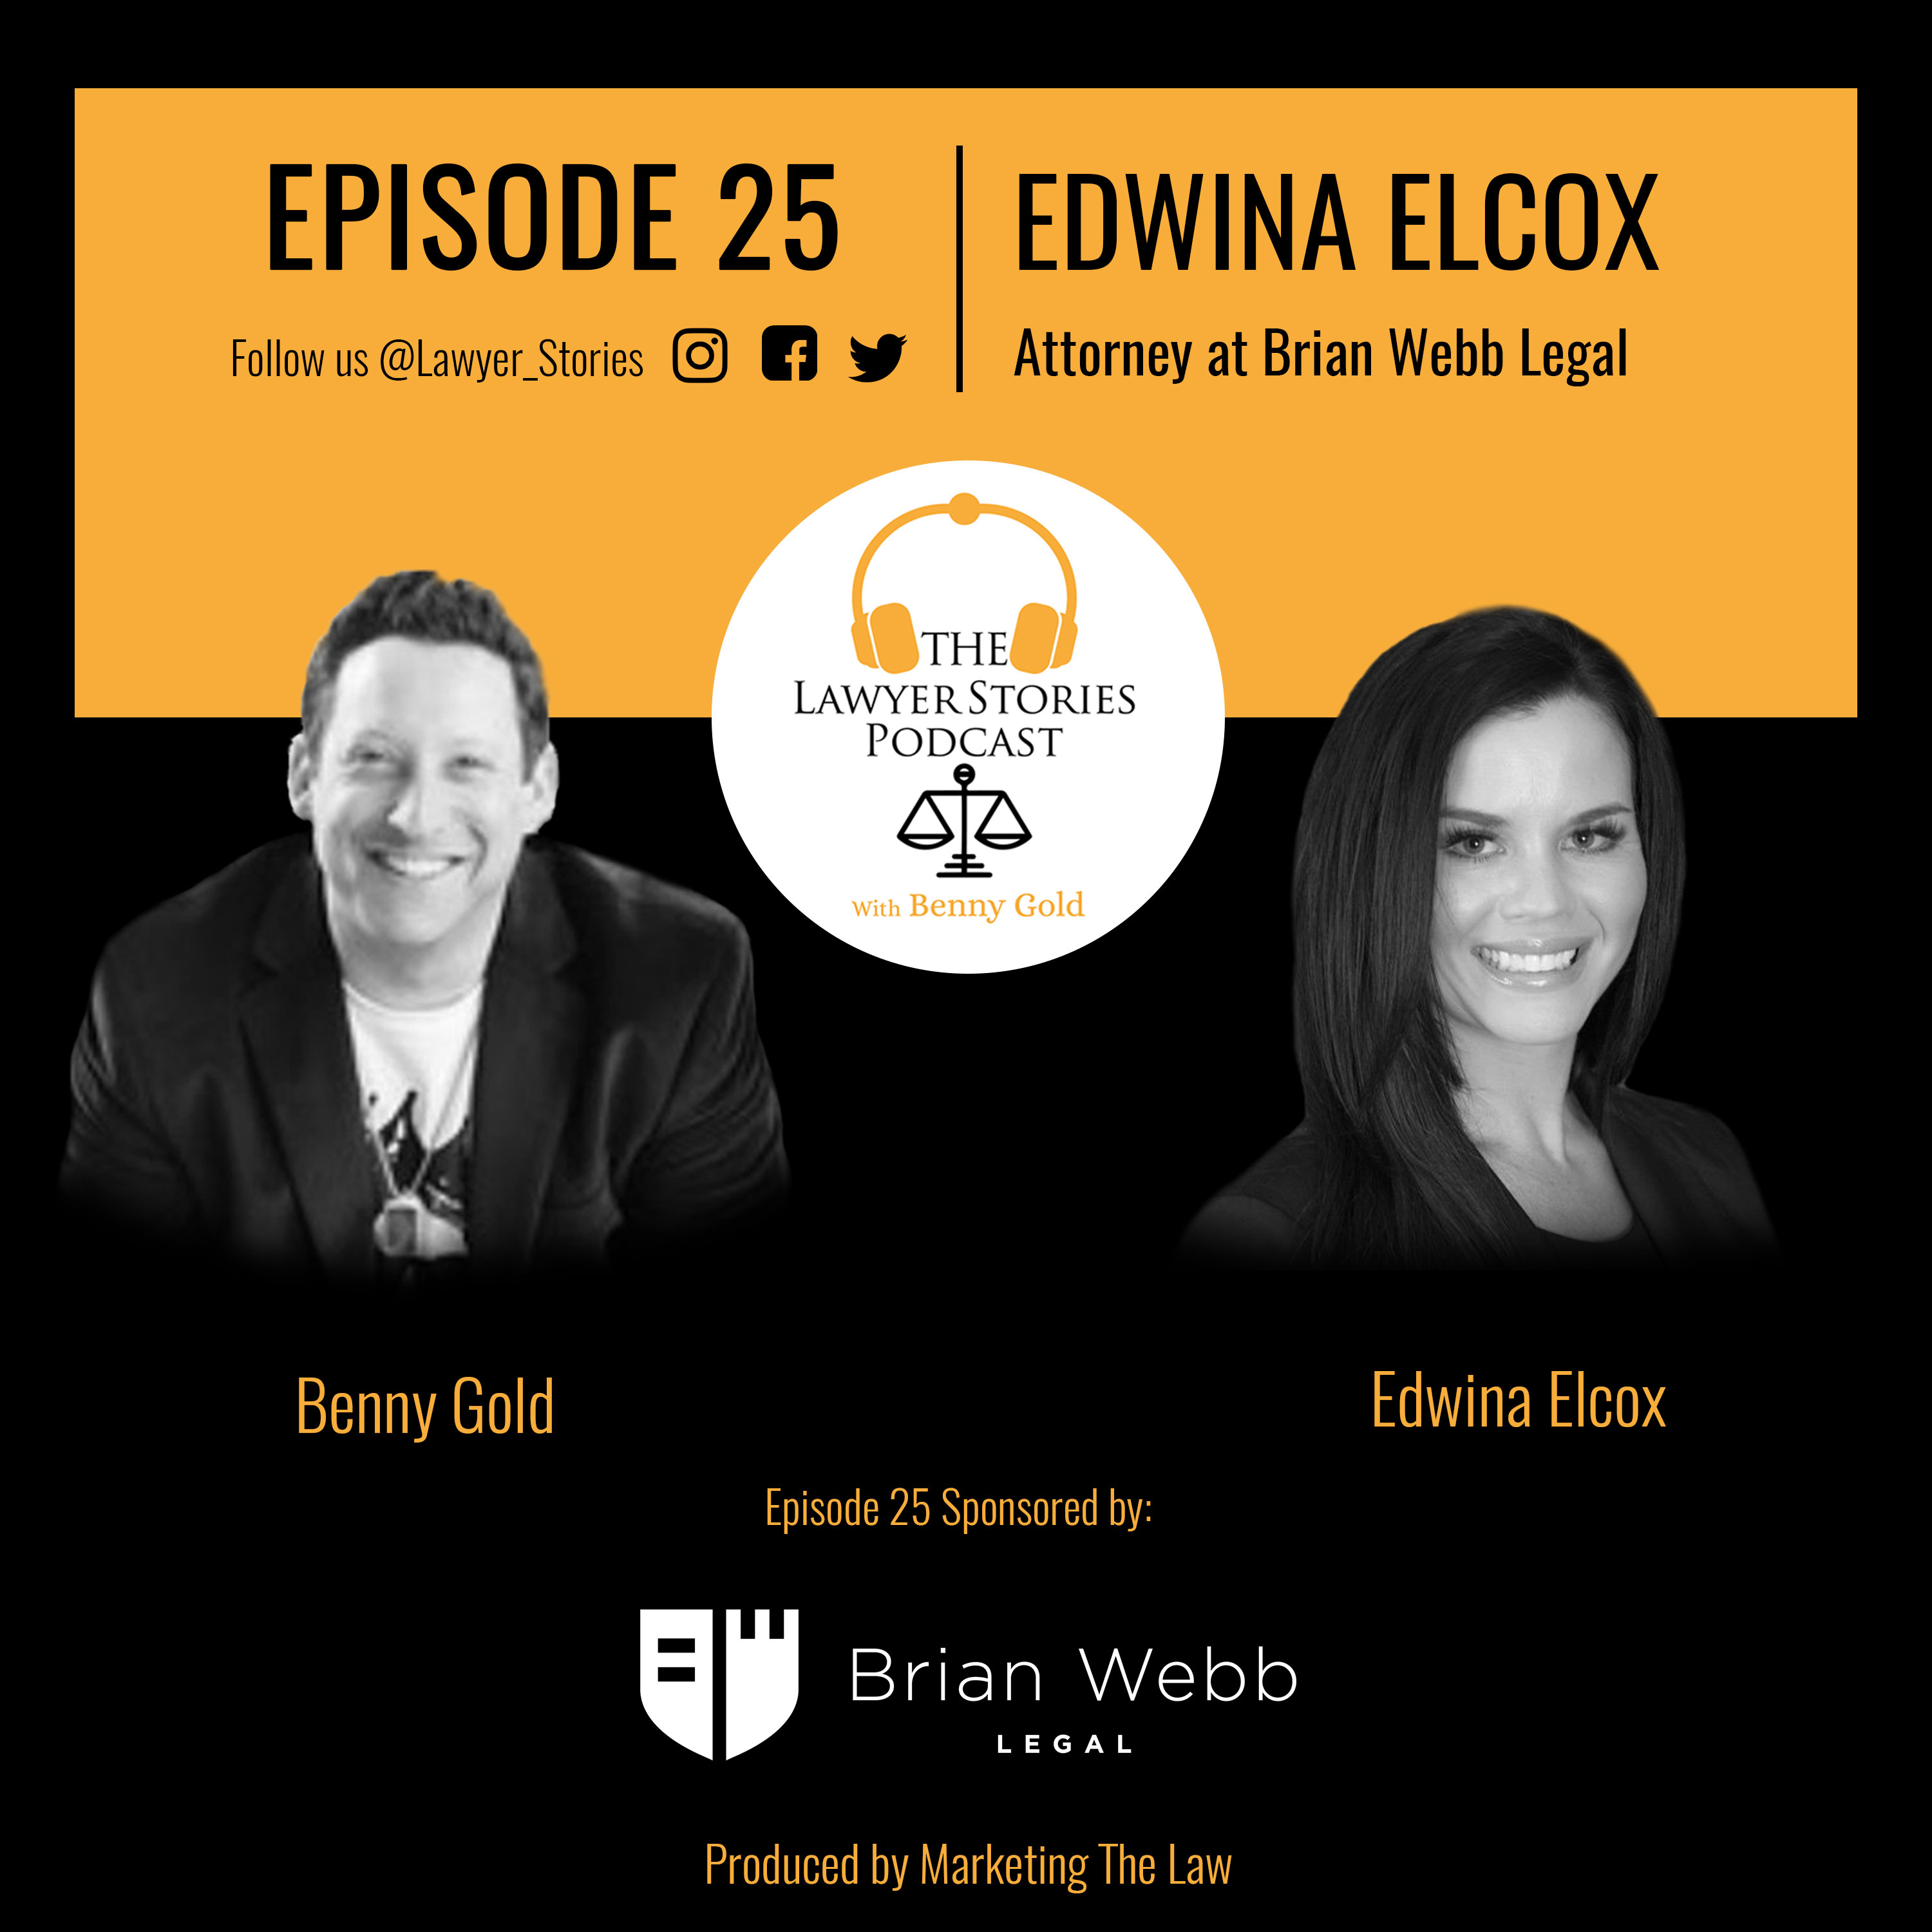 The Lawyer Stories Podcast Episode 25, featuring Edwina Elcox, Idaho Criminal Defense Attorney.